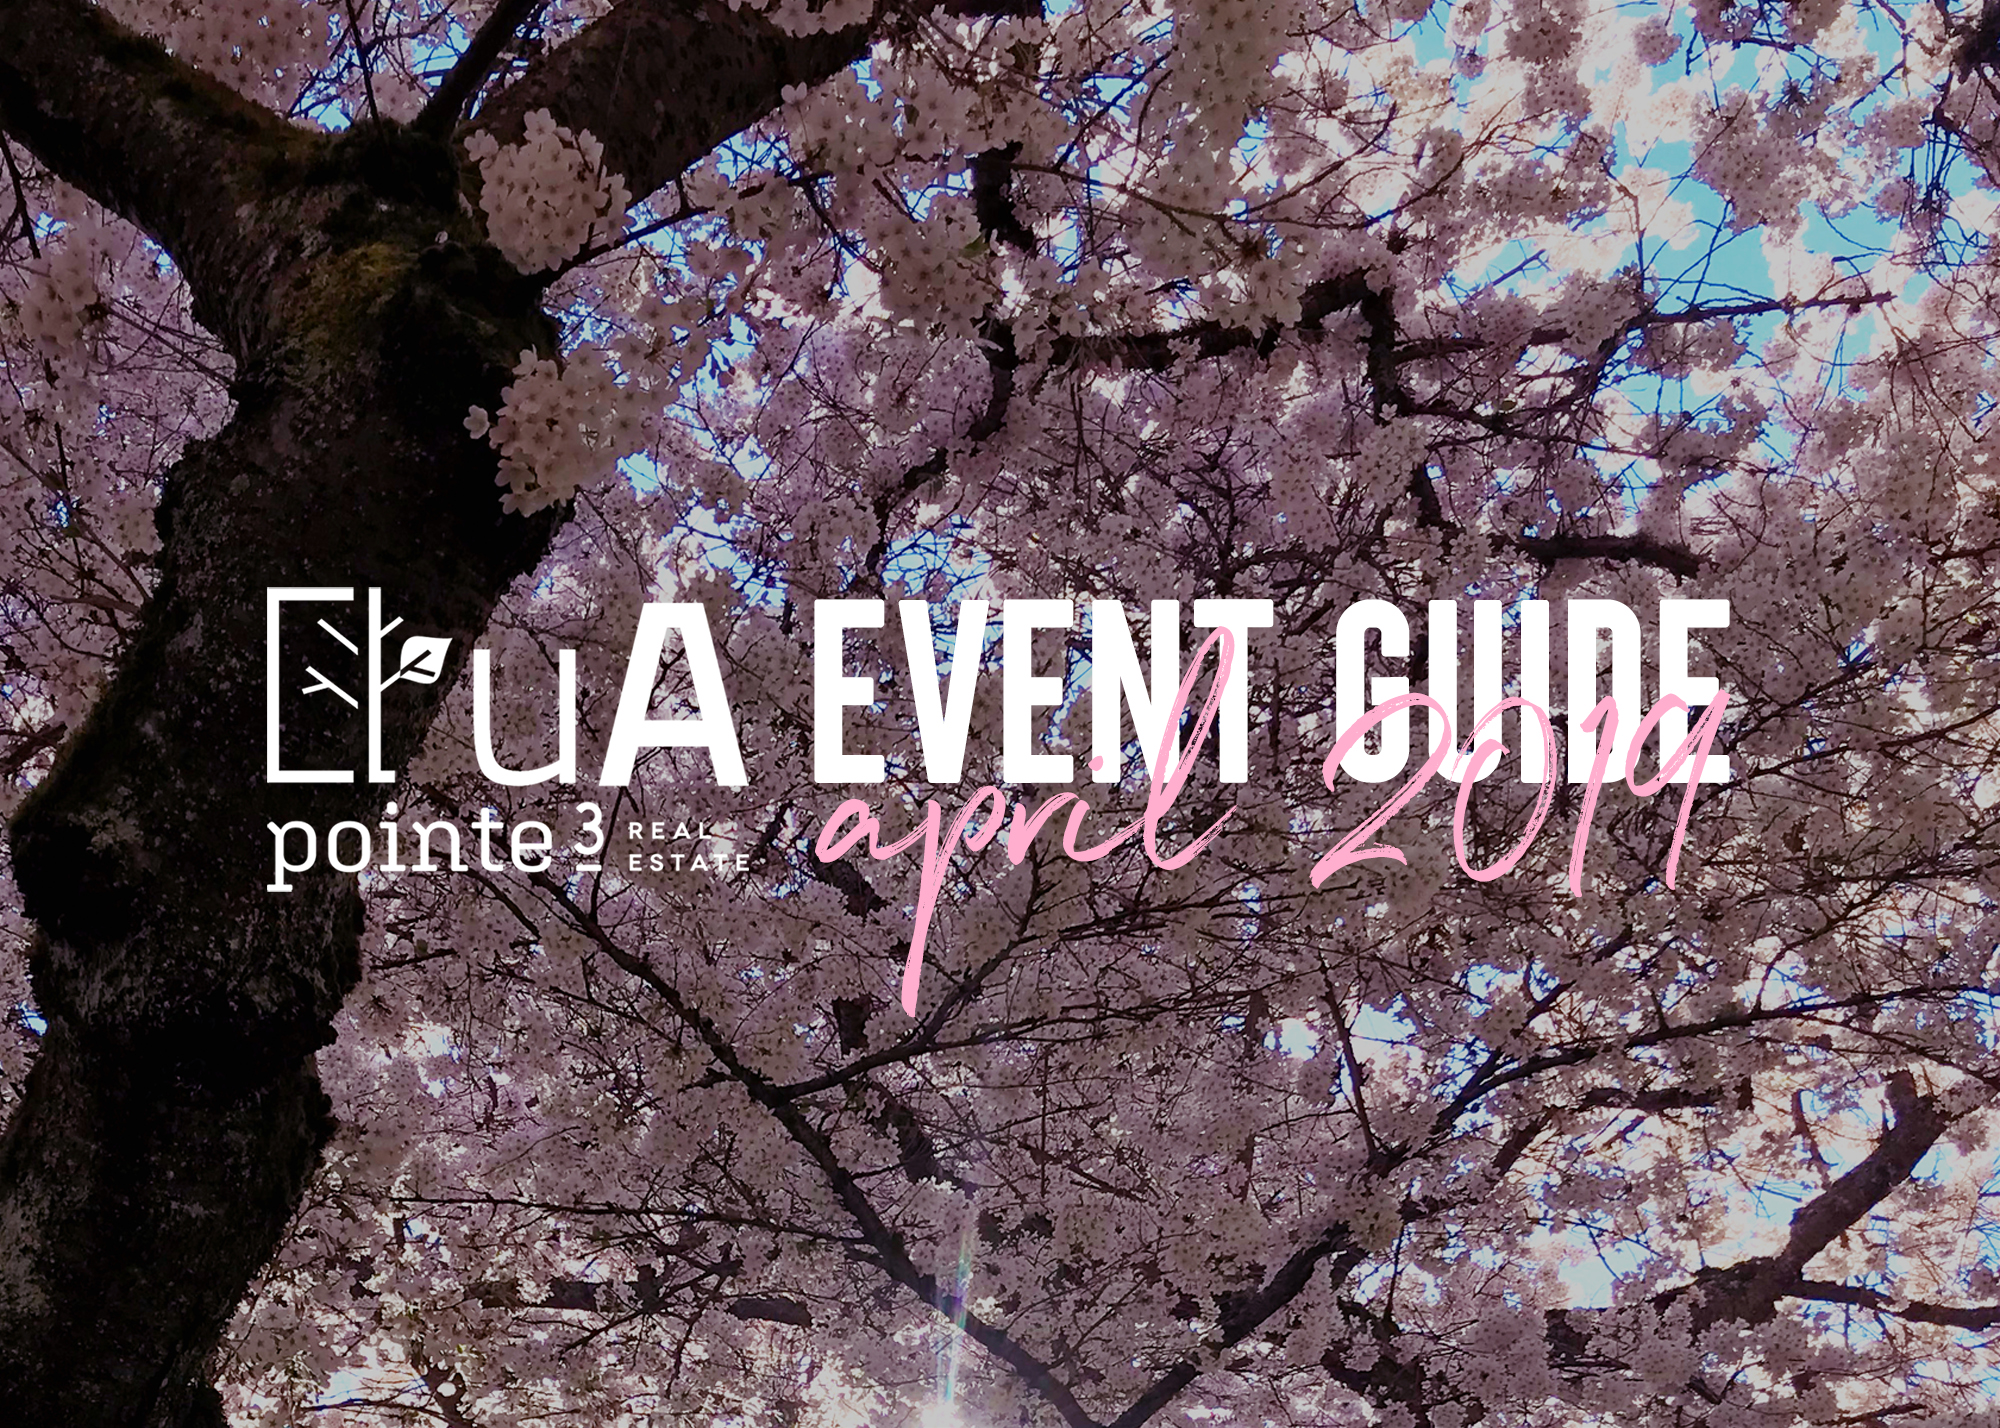 Seattle Event Guide - April 2019